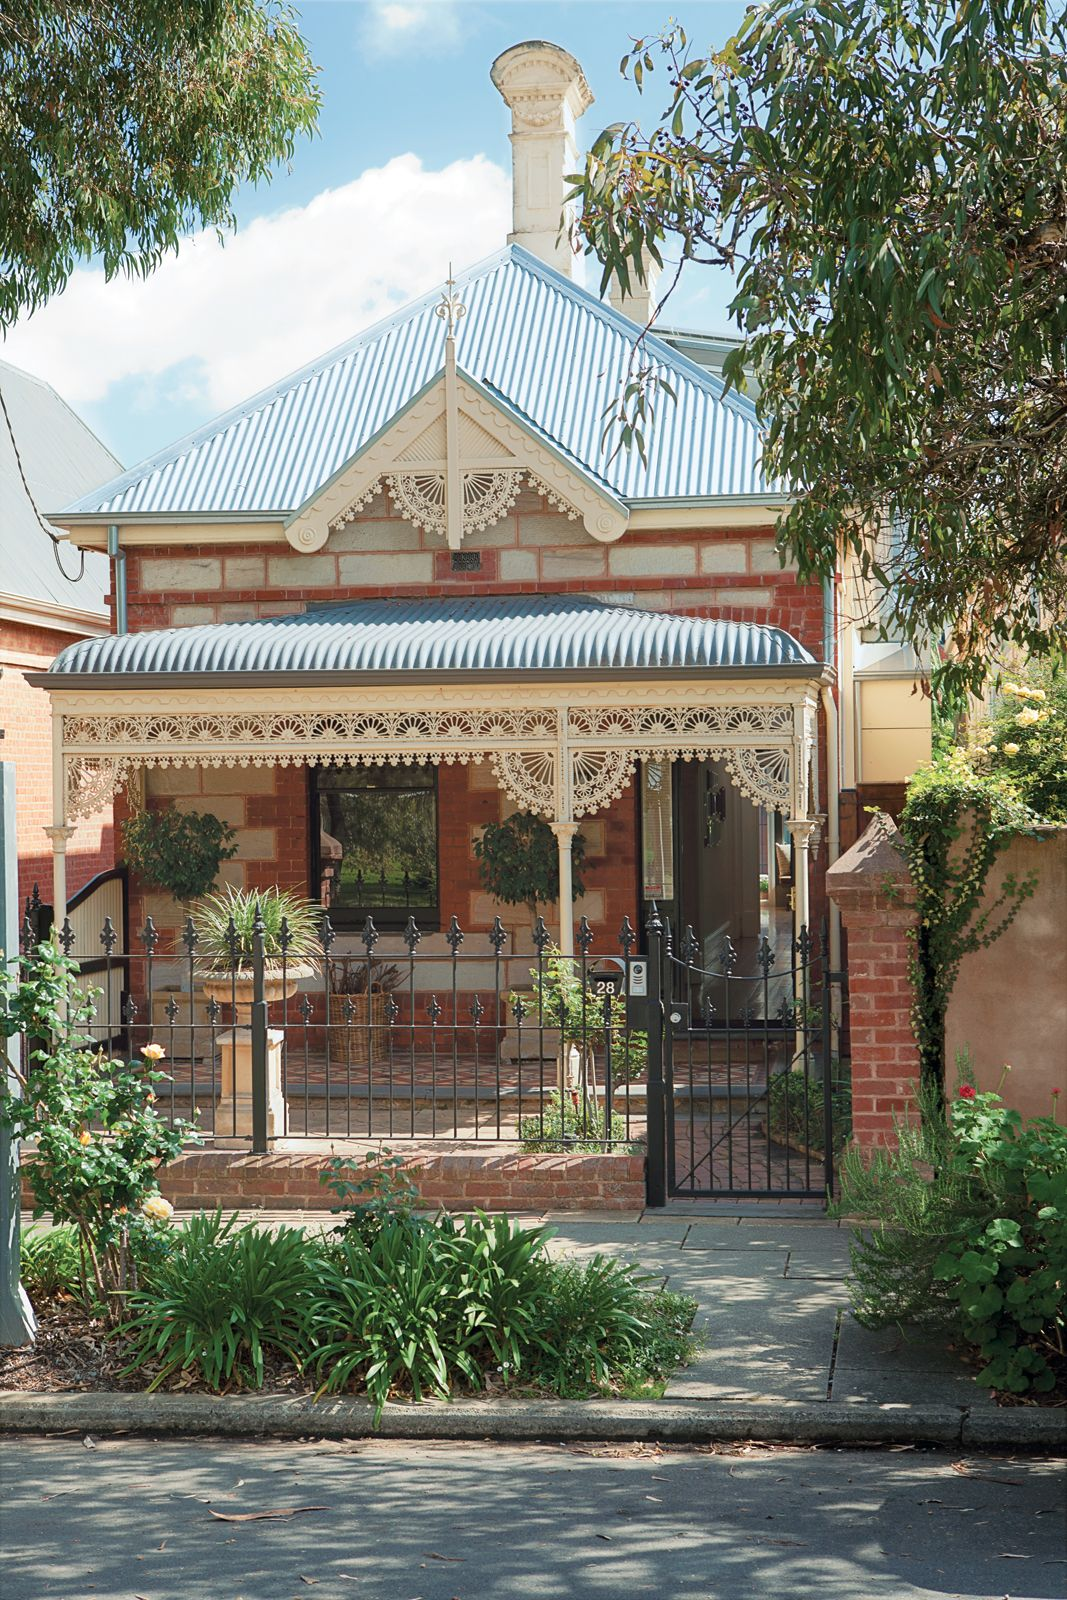 Victorian house colorful interiors for a classy exterior south yarra -  Front Of That Gorgeous House I Just Pinned Brammy Kyprianou Residence Facade Victorian Brick And 1880 Sandstone And Galvanized Iron Ornamentation